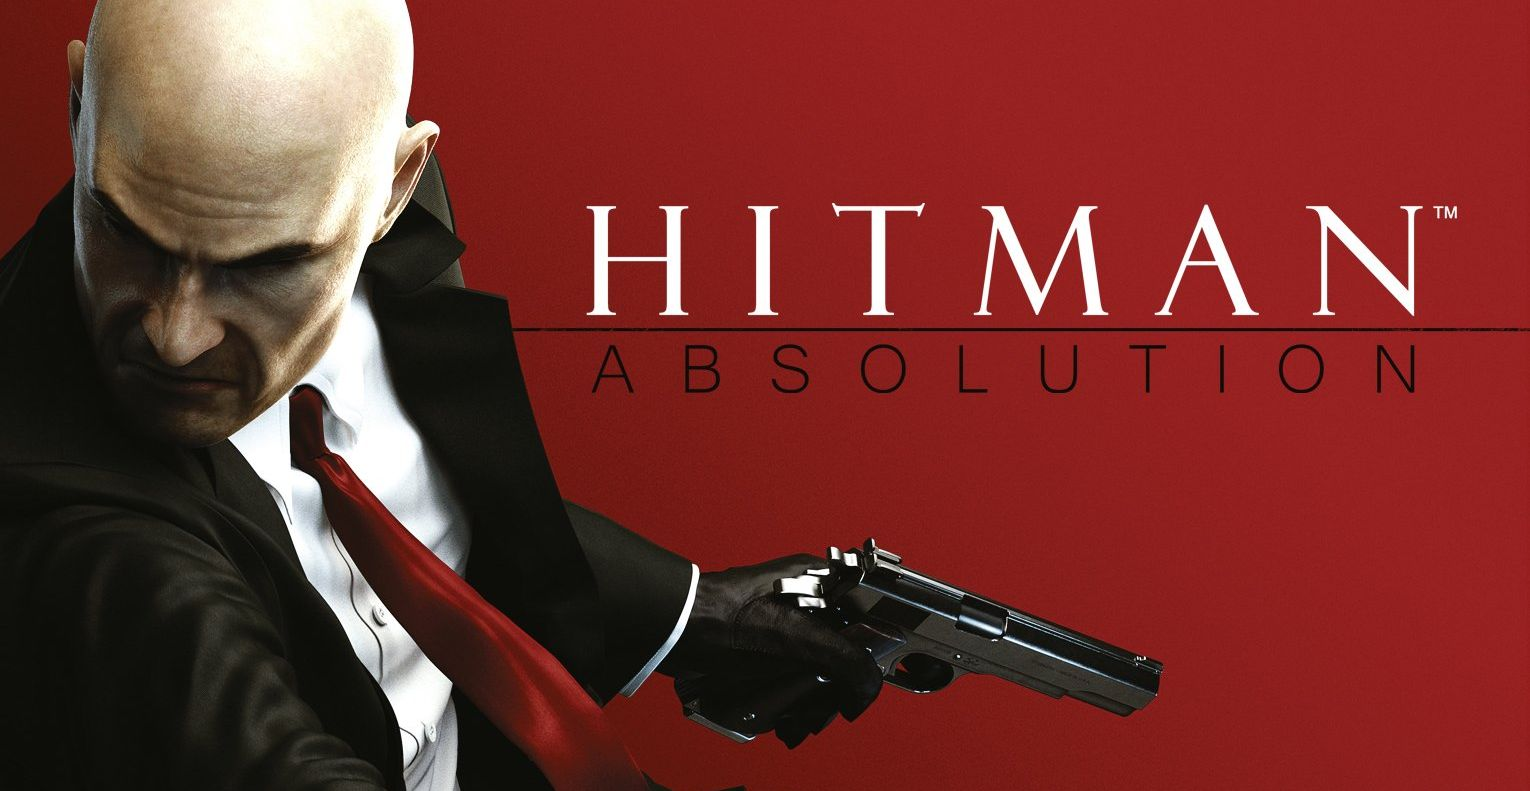 Hitman: Absolution (Steam Gift / Region Free) HB link